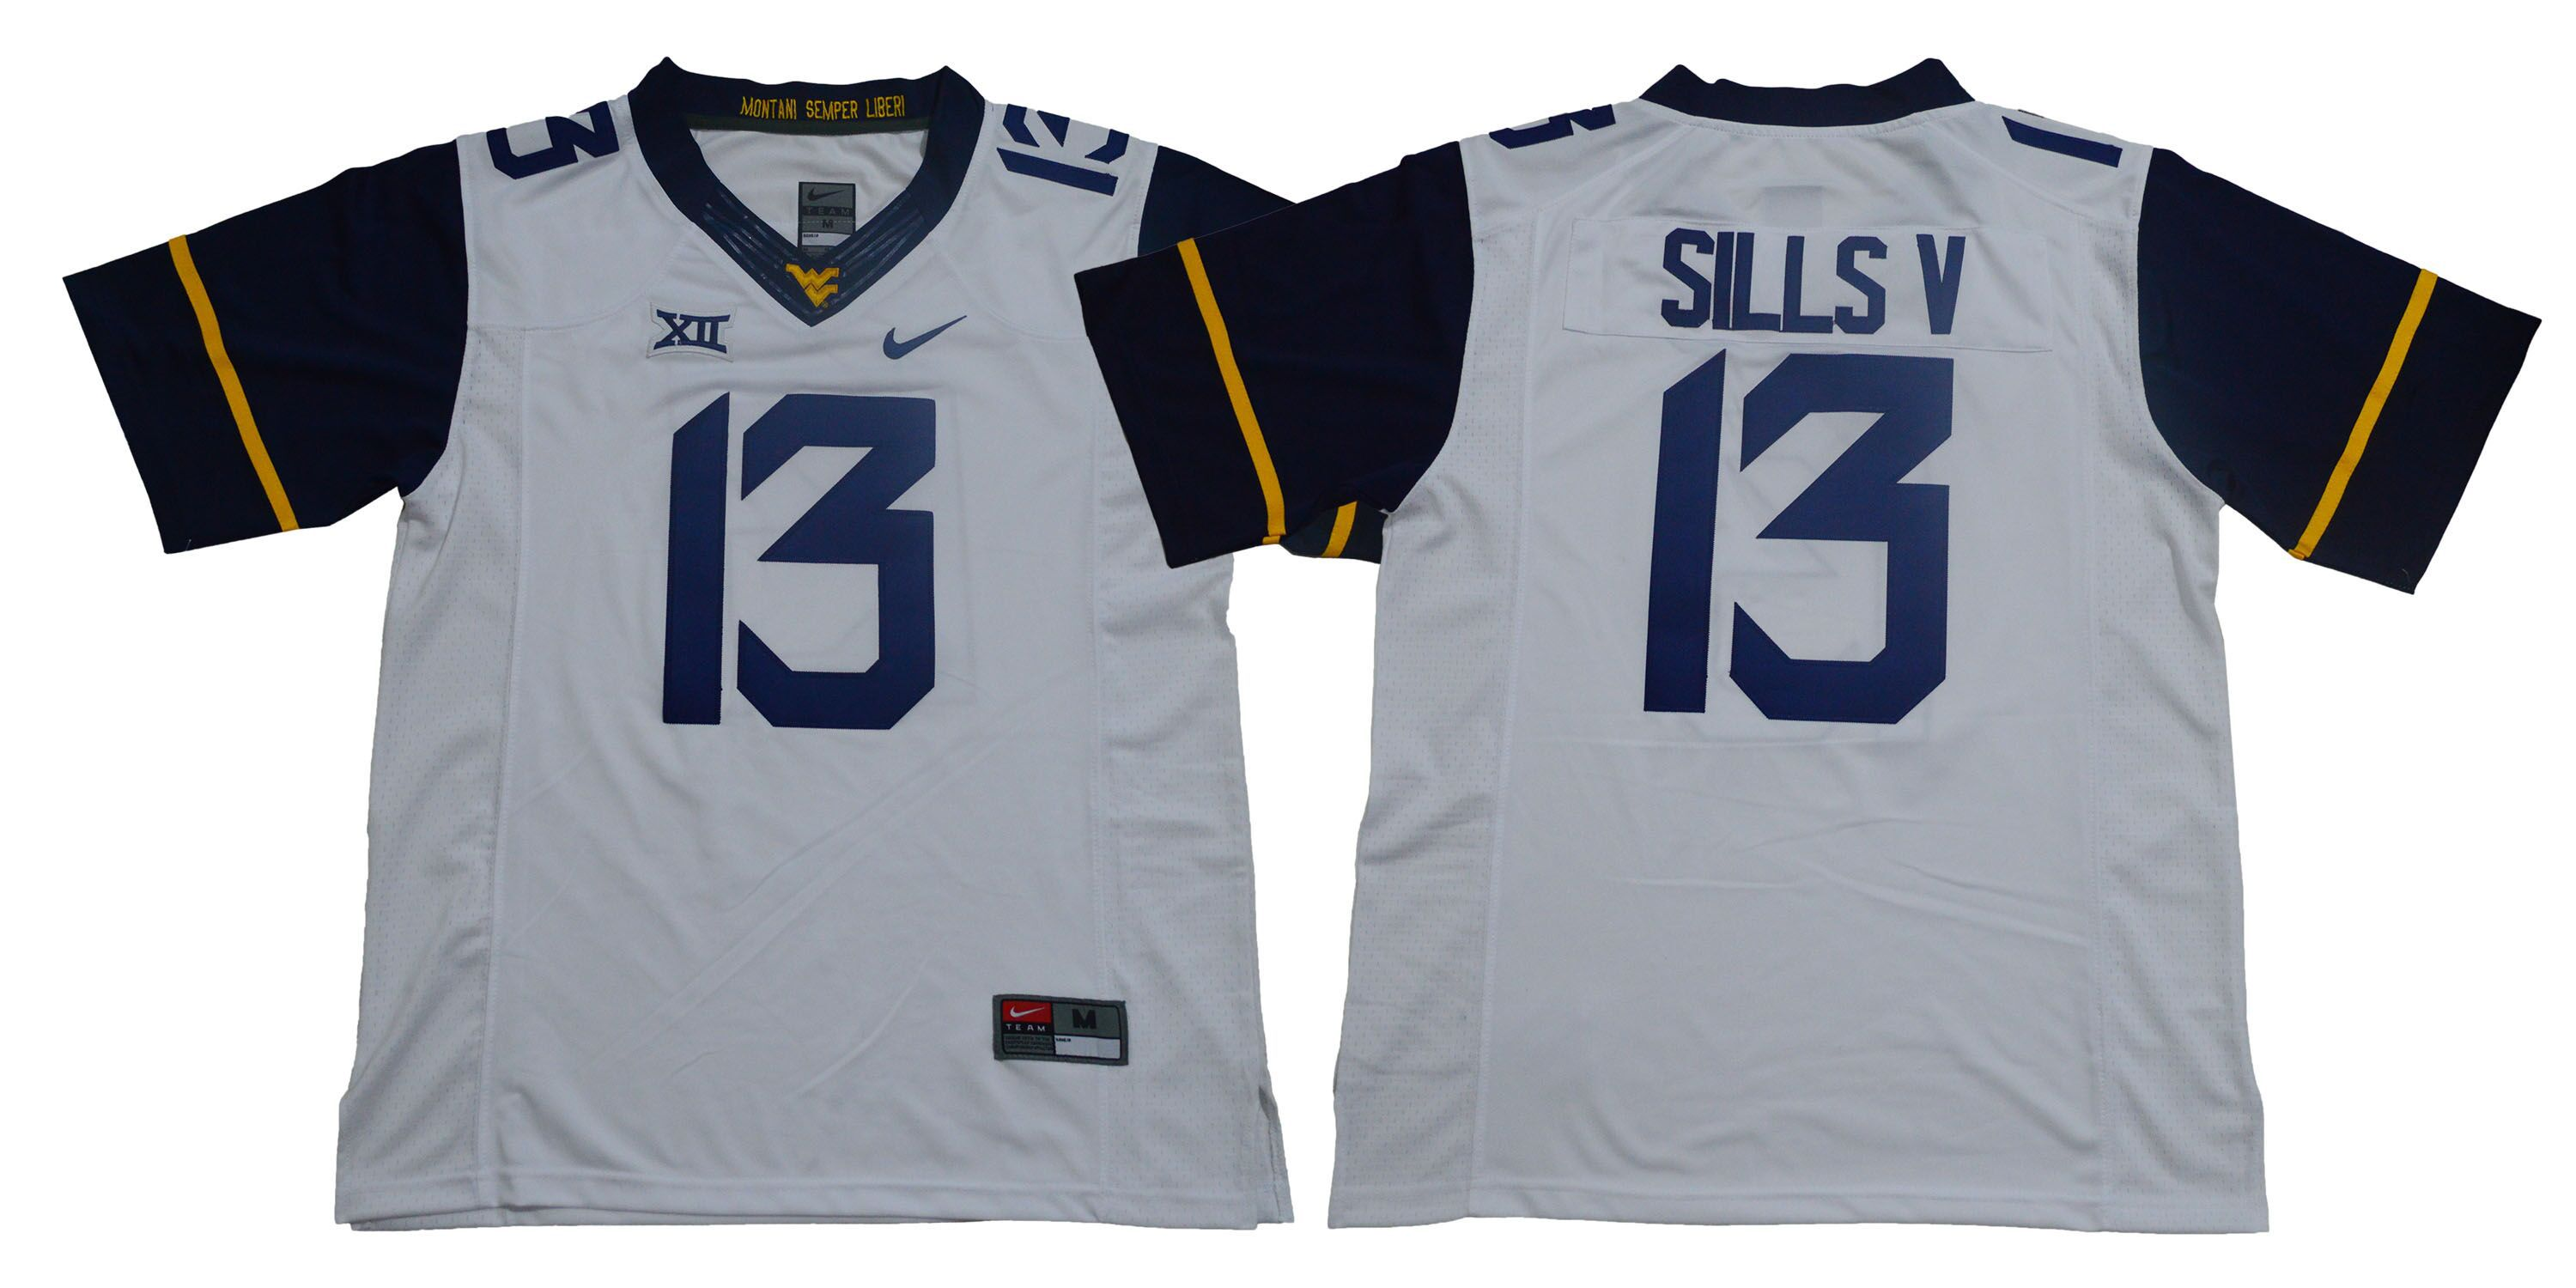 Men West Virginia Mountaineers 13 Sills v White Nike NCAA Jerseys